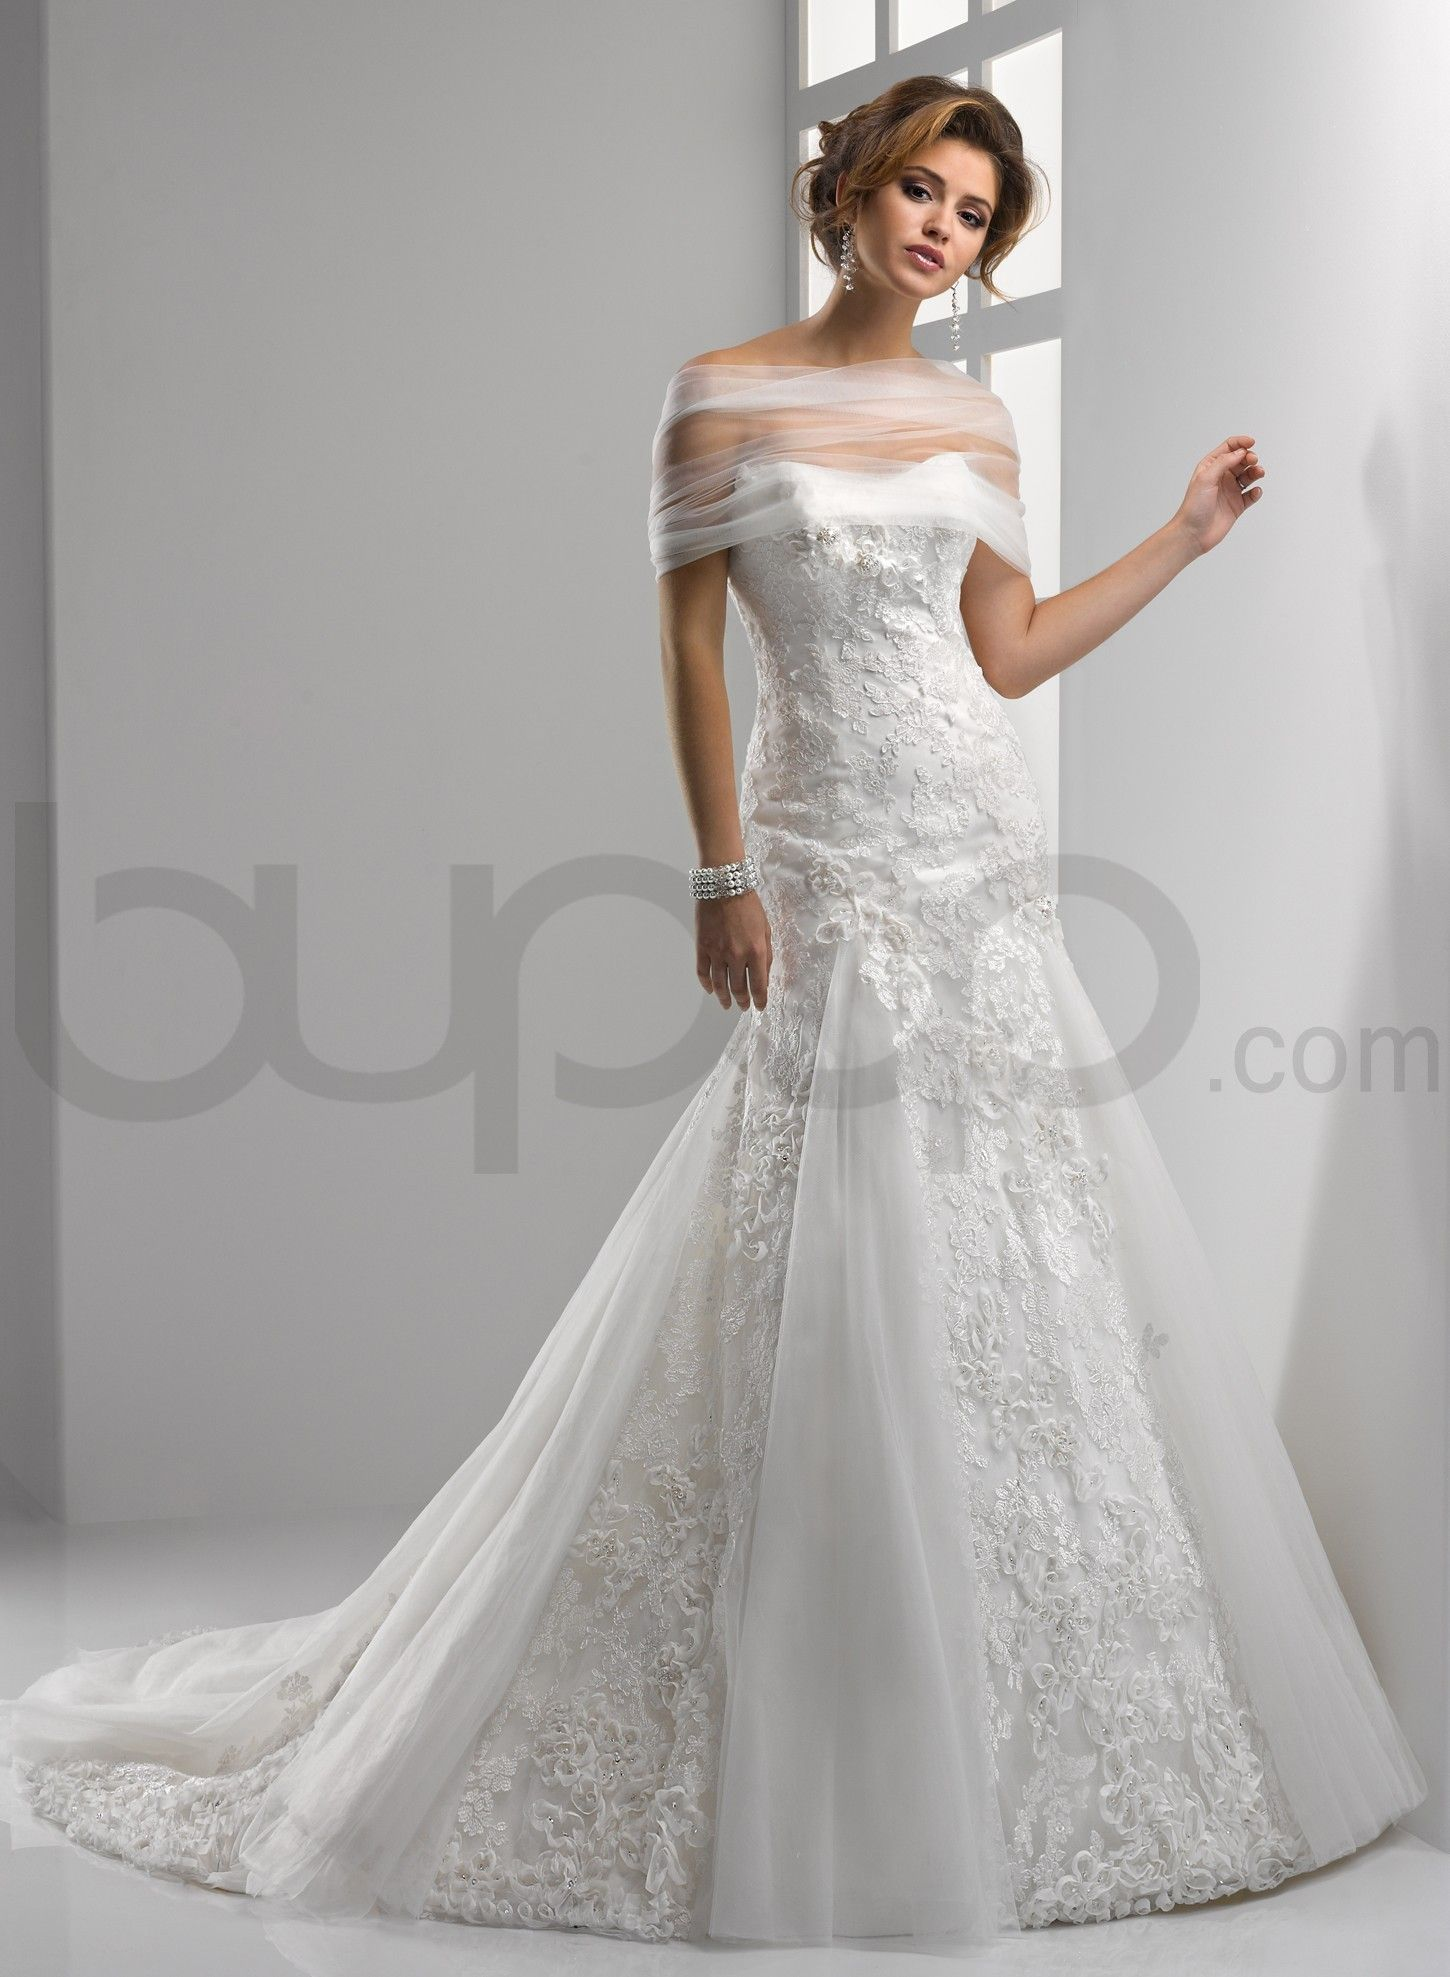 Lace Fit And Flare Wedding Dress With Sleeves Google Search W